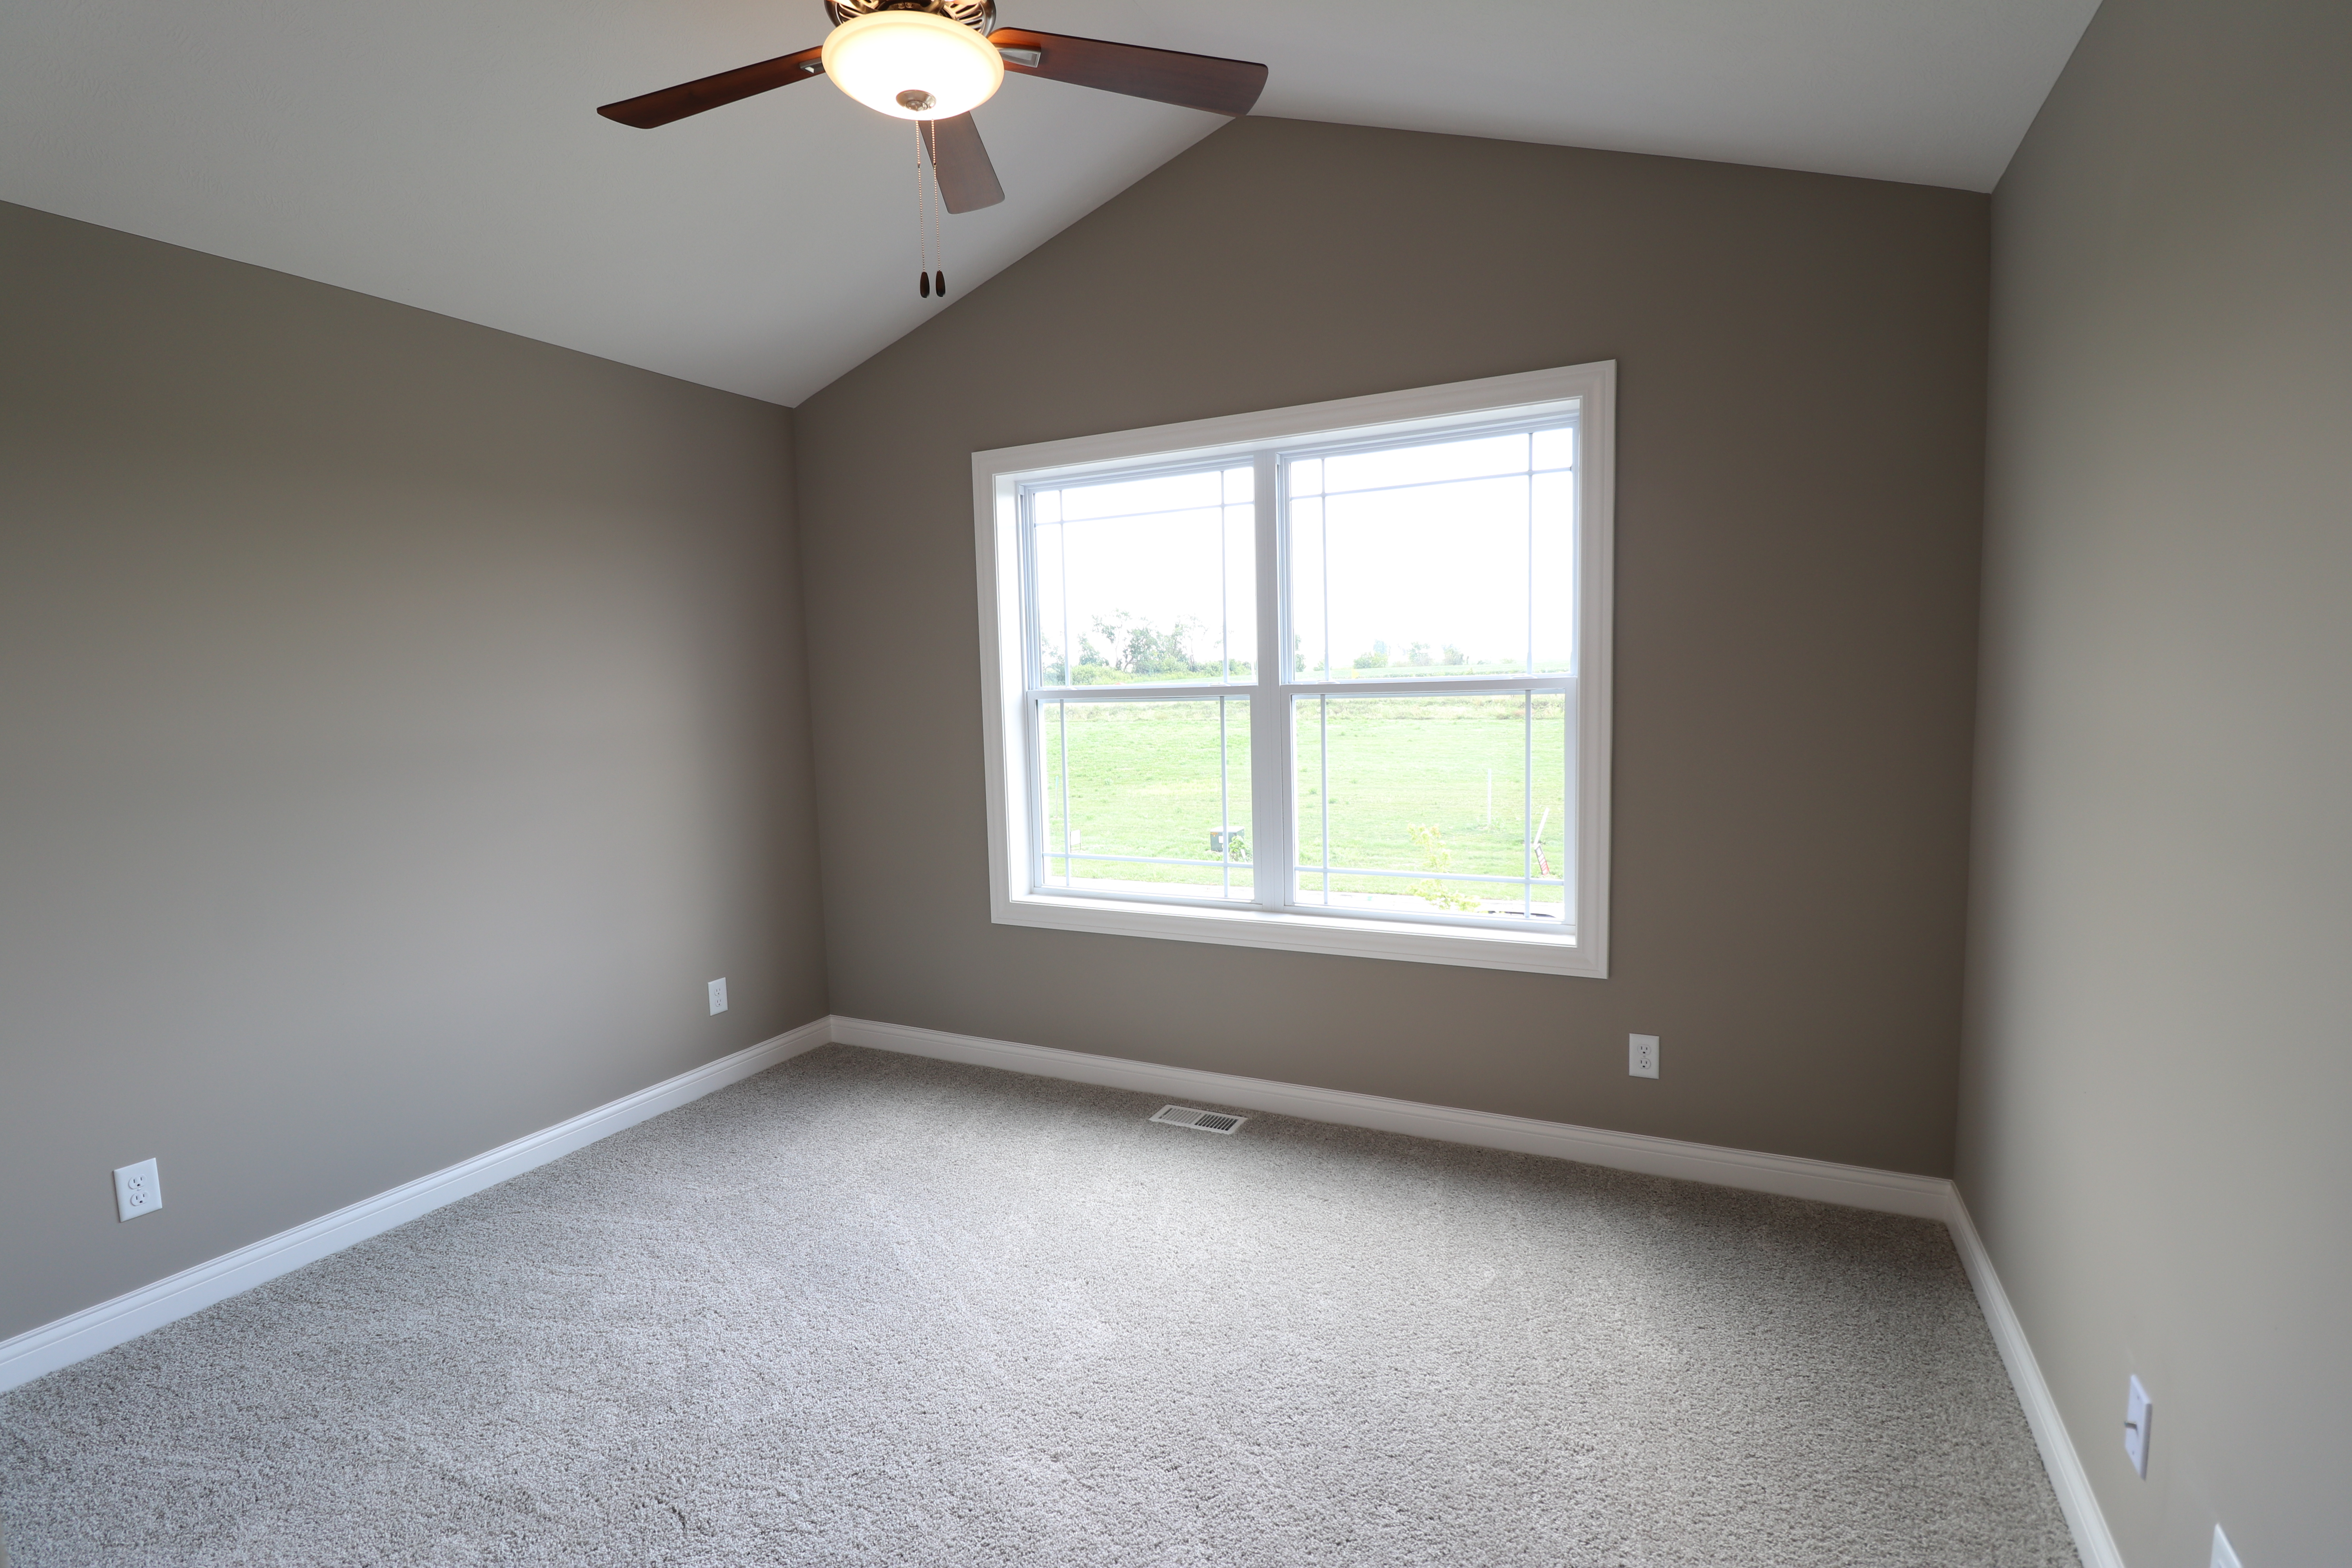 House for sale in the Dunlap peoria area bedroom